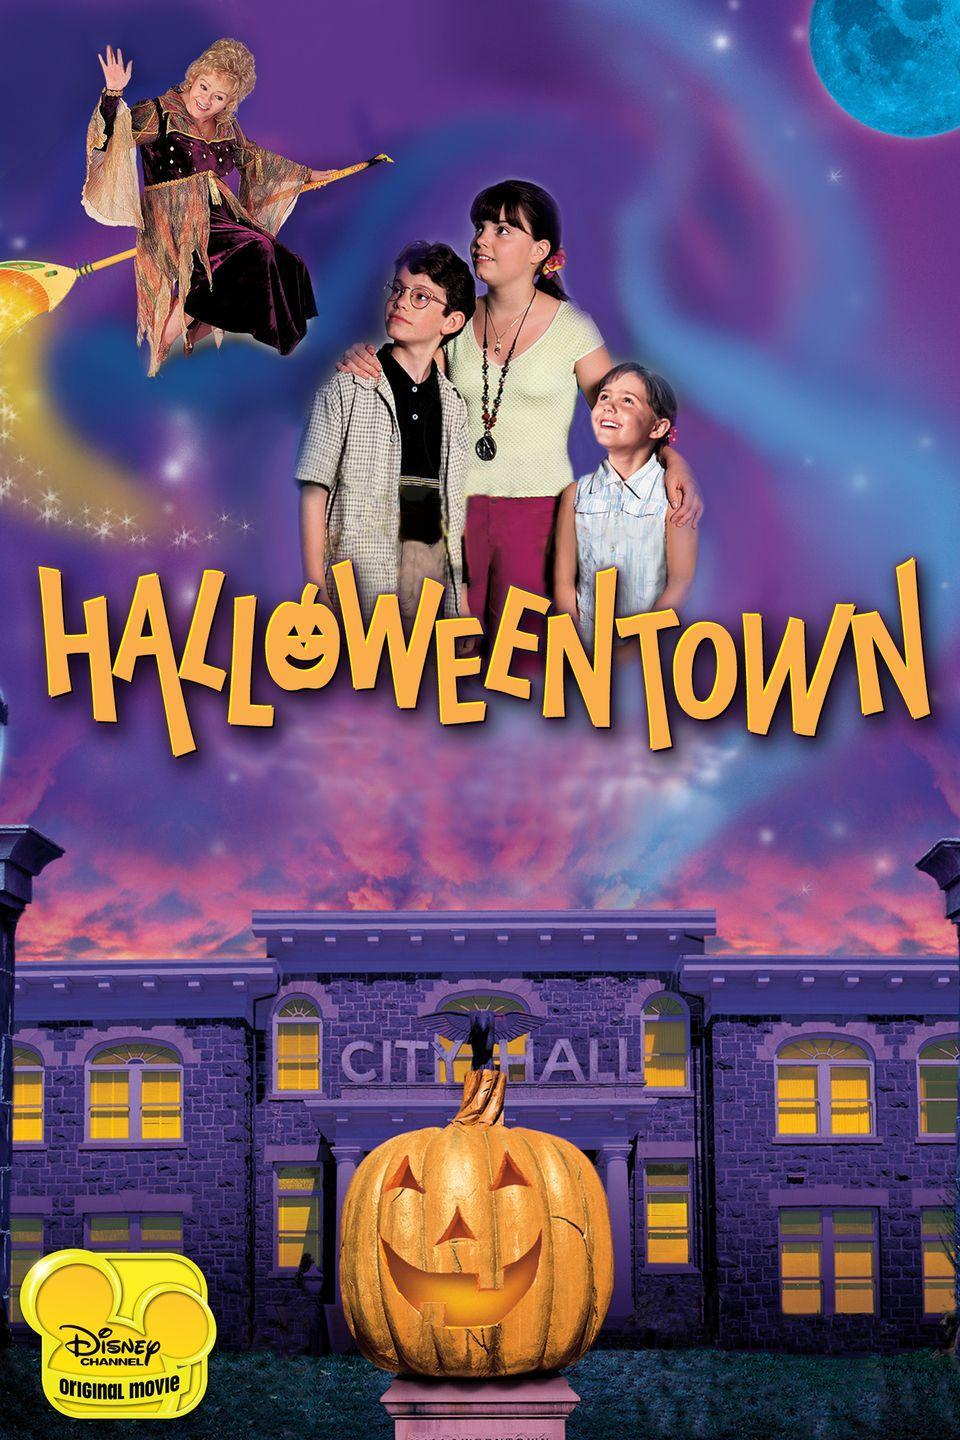 """<p>Obviously <em>Halloweentown </em>is on this list! It's the perfect non-scary Halloween movie! Plus, there are so many sequels meaning it's perfect for a movie marathon. </p><p><a class=""""link rapid-noclick-resp"""" href=""""https://go.redirectingat.com?id=74968X1596630&url=https%3A%2F%2Fwww.disneyplus.com%2Fmovies%2Fhalloweentown%2Fkn5updFQLqbG&sref=https%3A%2F%2Fwww.seventeen.com%2Fcelebrity%2Fmovies-tv%2Fg29354714%2Fnon-scary-halloween-movies%2F"""" rel=""""nofollow noopener"""" target=""""_blank"""" data-ylk=""""slk:Watch Now"""">Watch Now</a></p>"""